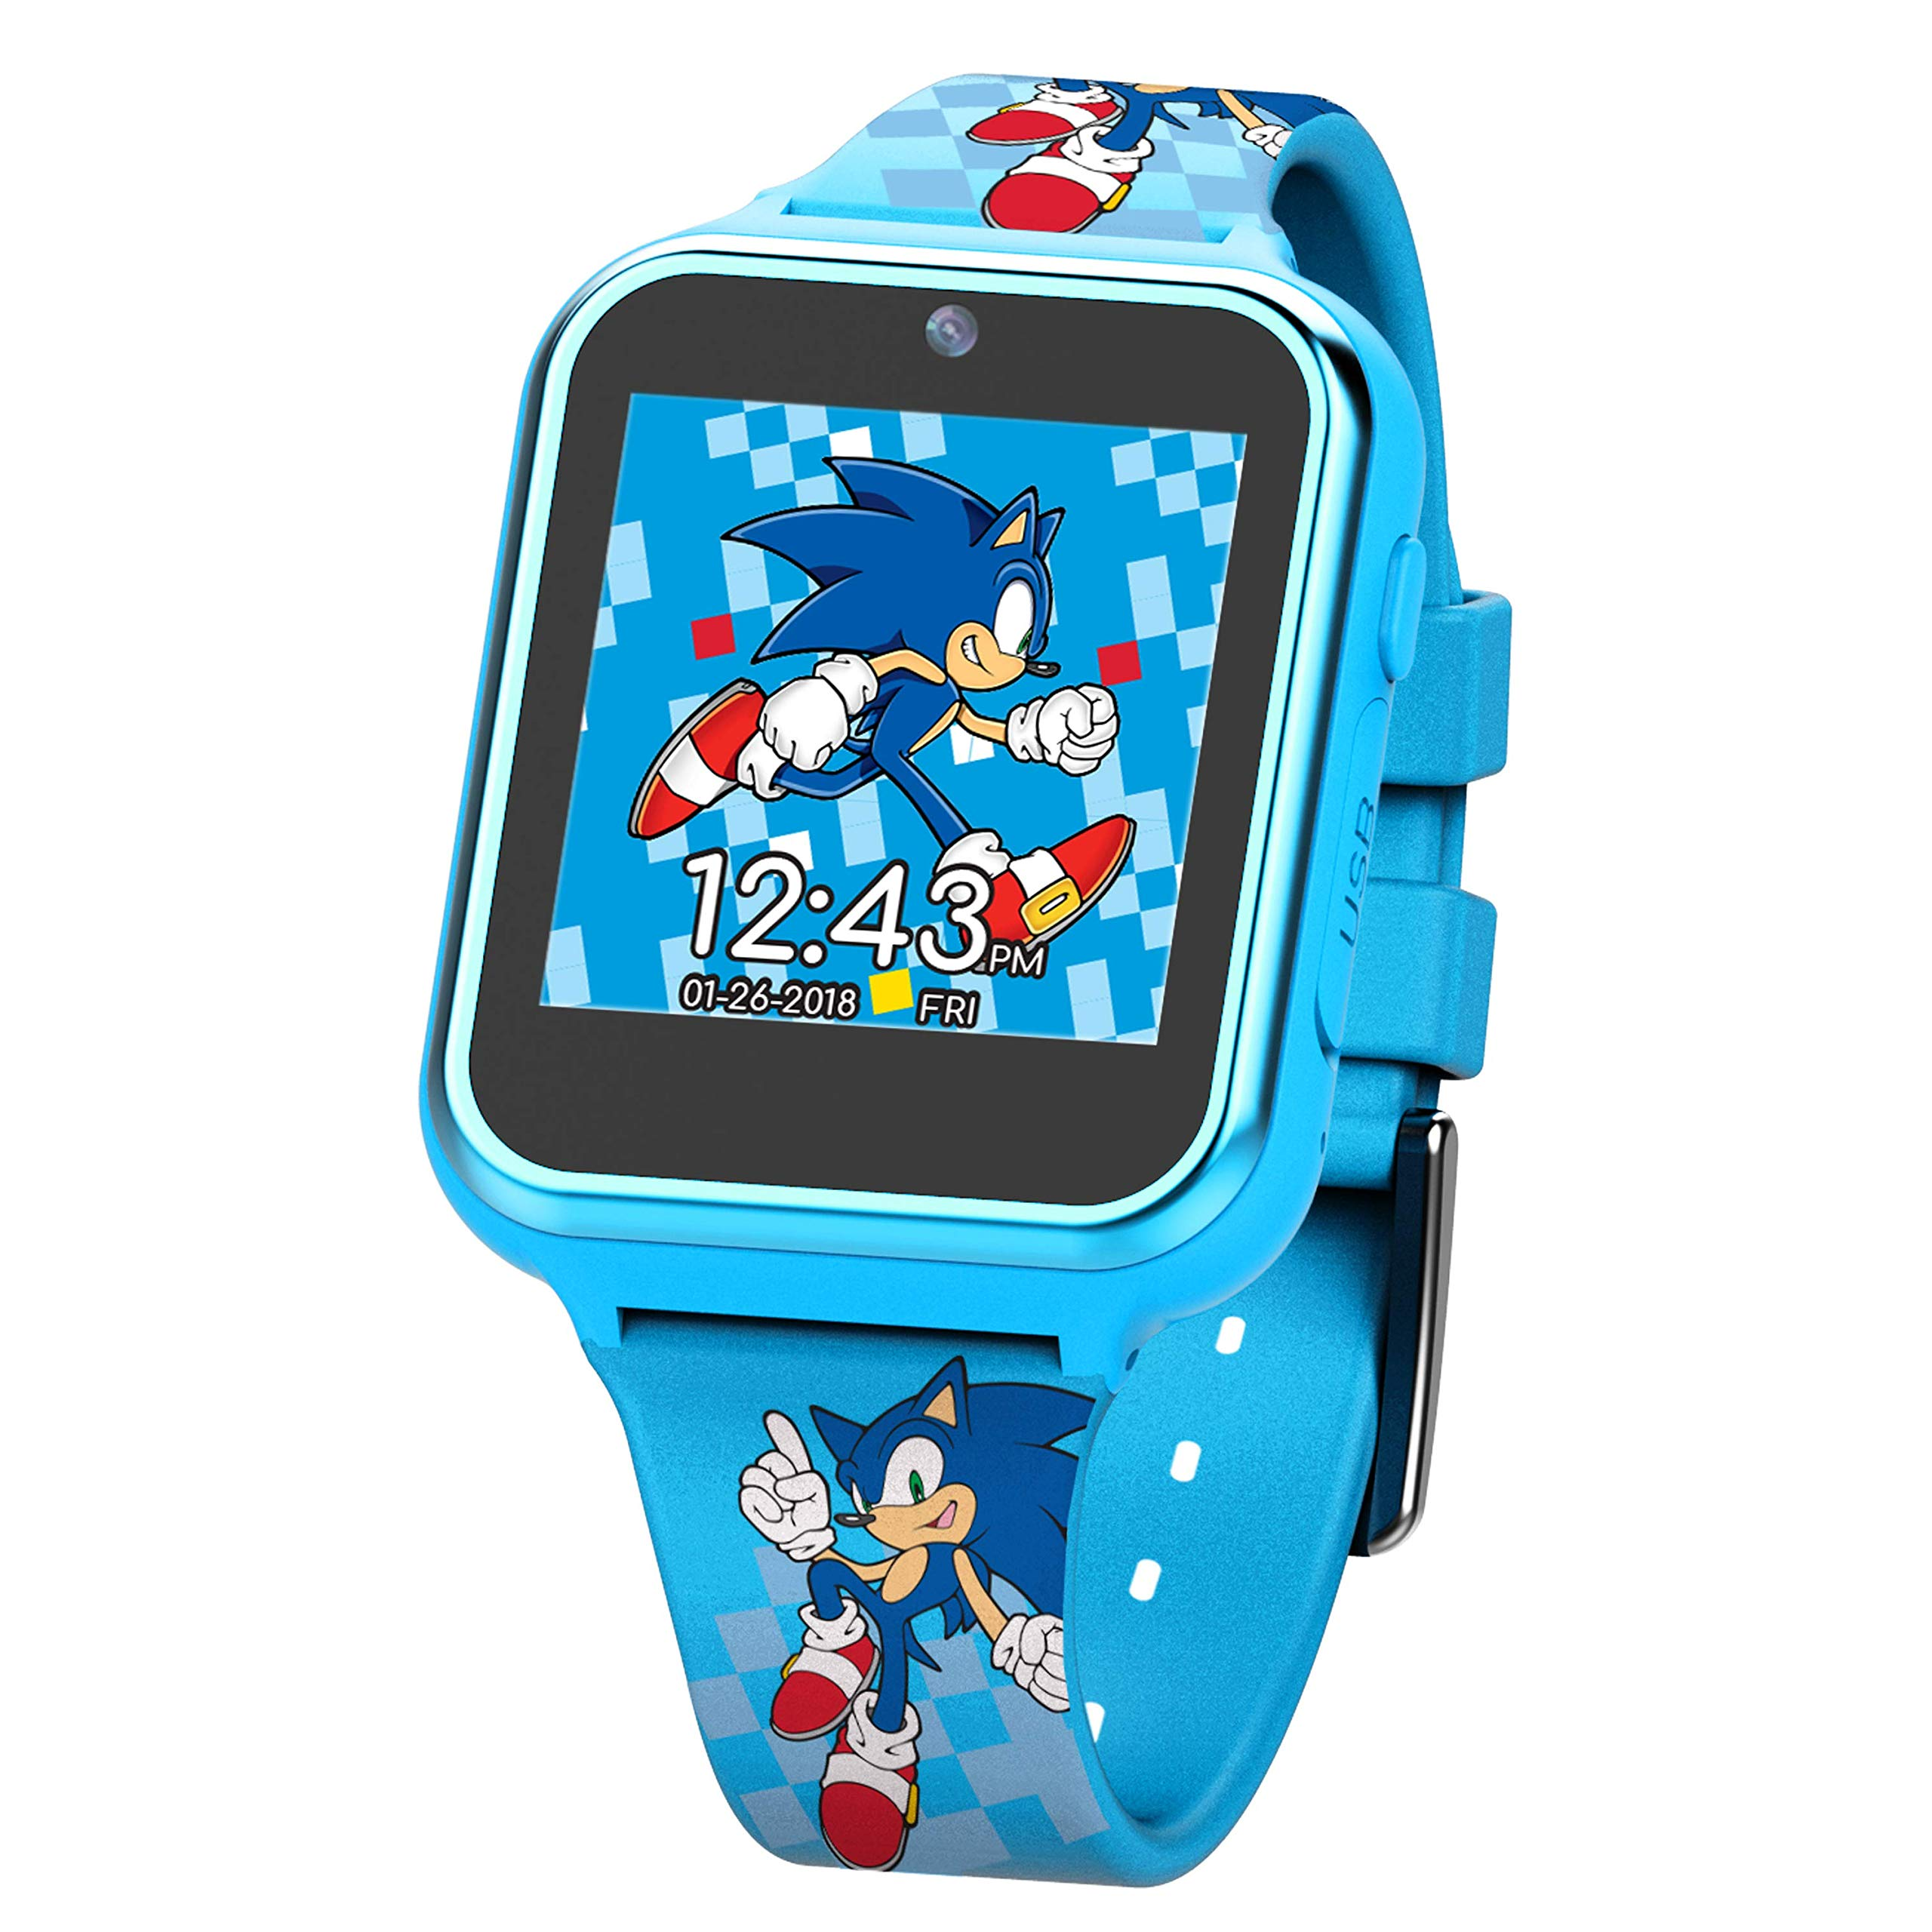 Sonic the Hedgehog Touch-Screen Smartwatch, Built in Selfie-Camera, Non-Toxic, Easy-to-Buckle Strap, Blue Smartwatch - Model: SNC4055AZ by Sonic the Hedgehog